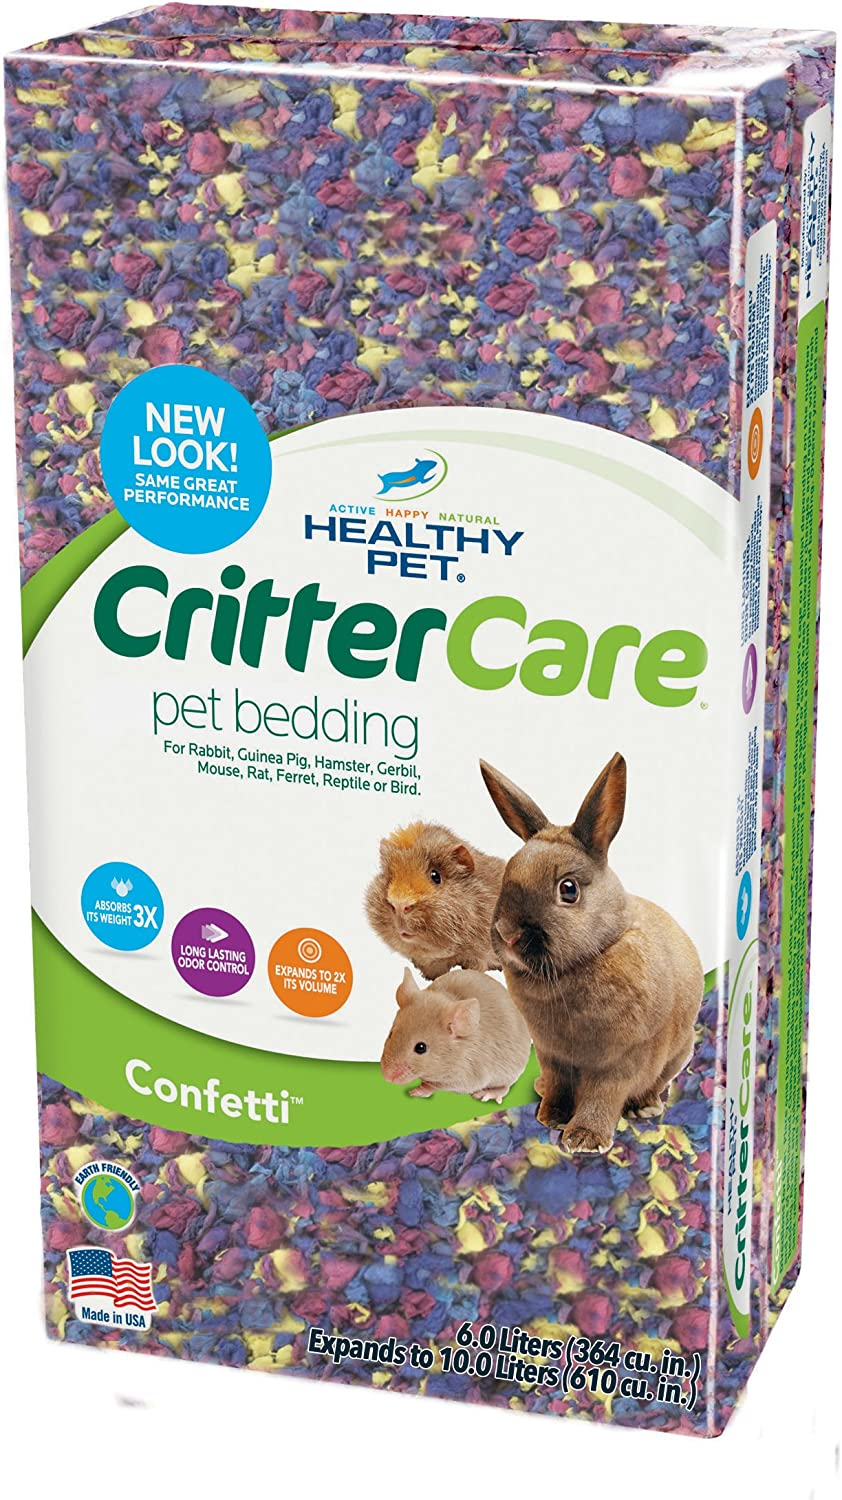 Healthy Pet Bedding In Colors, 10-Liter